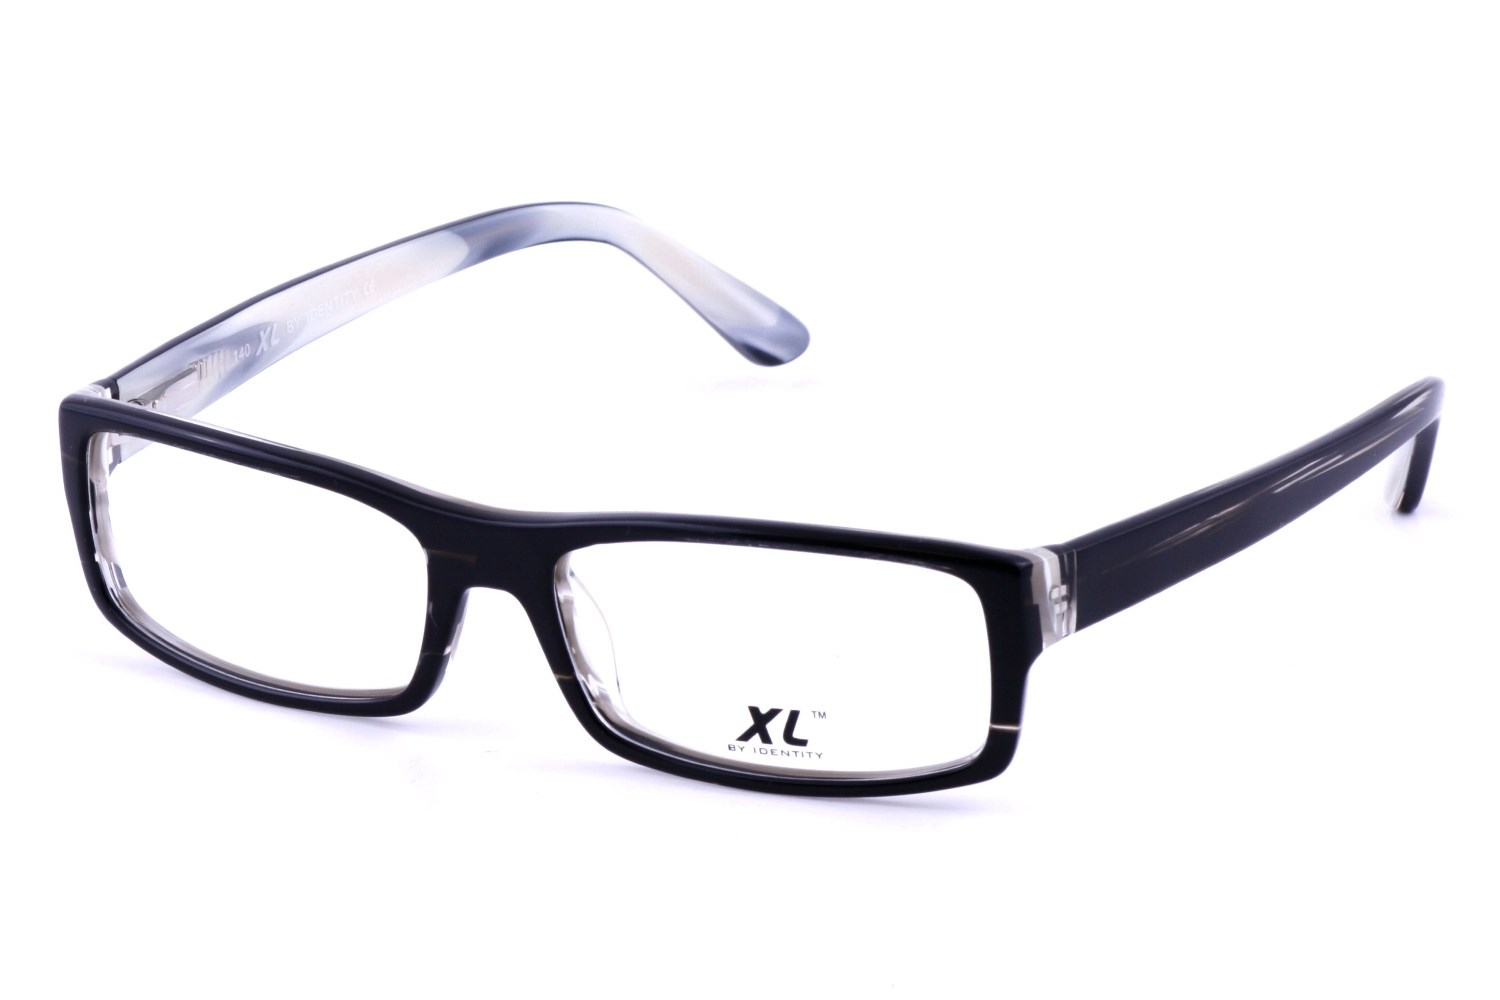 Glasses Frames Xl : Identity Xl Pbx8601 Prescription Eyeglasses Frames ...